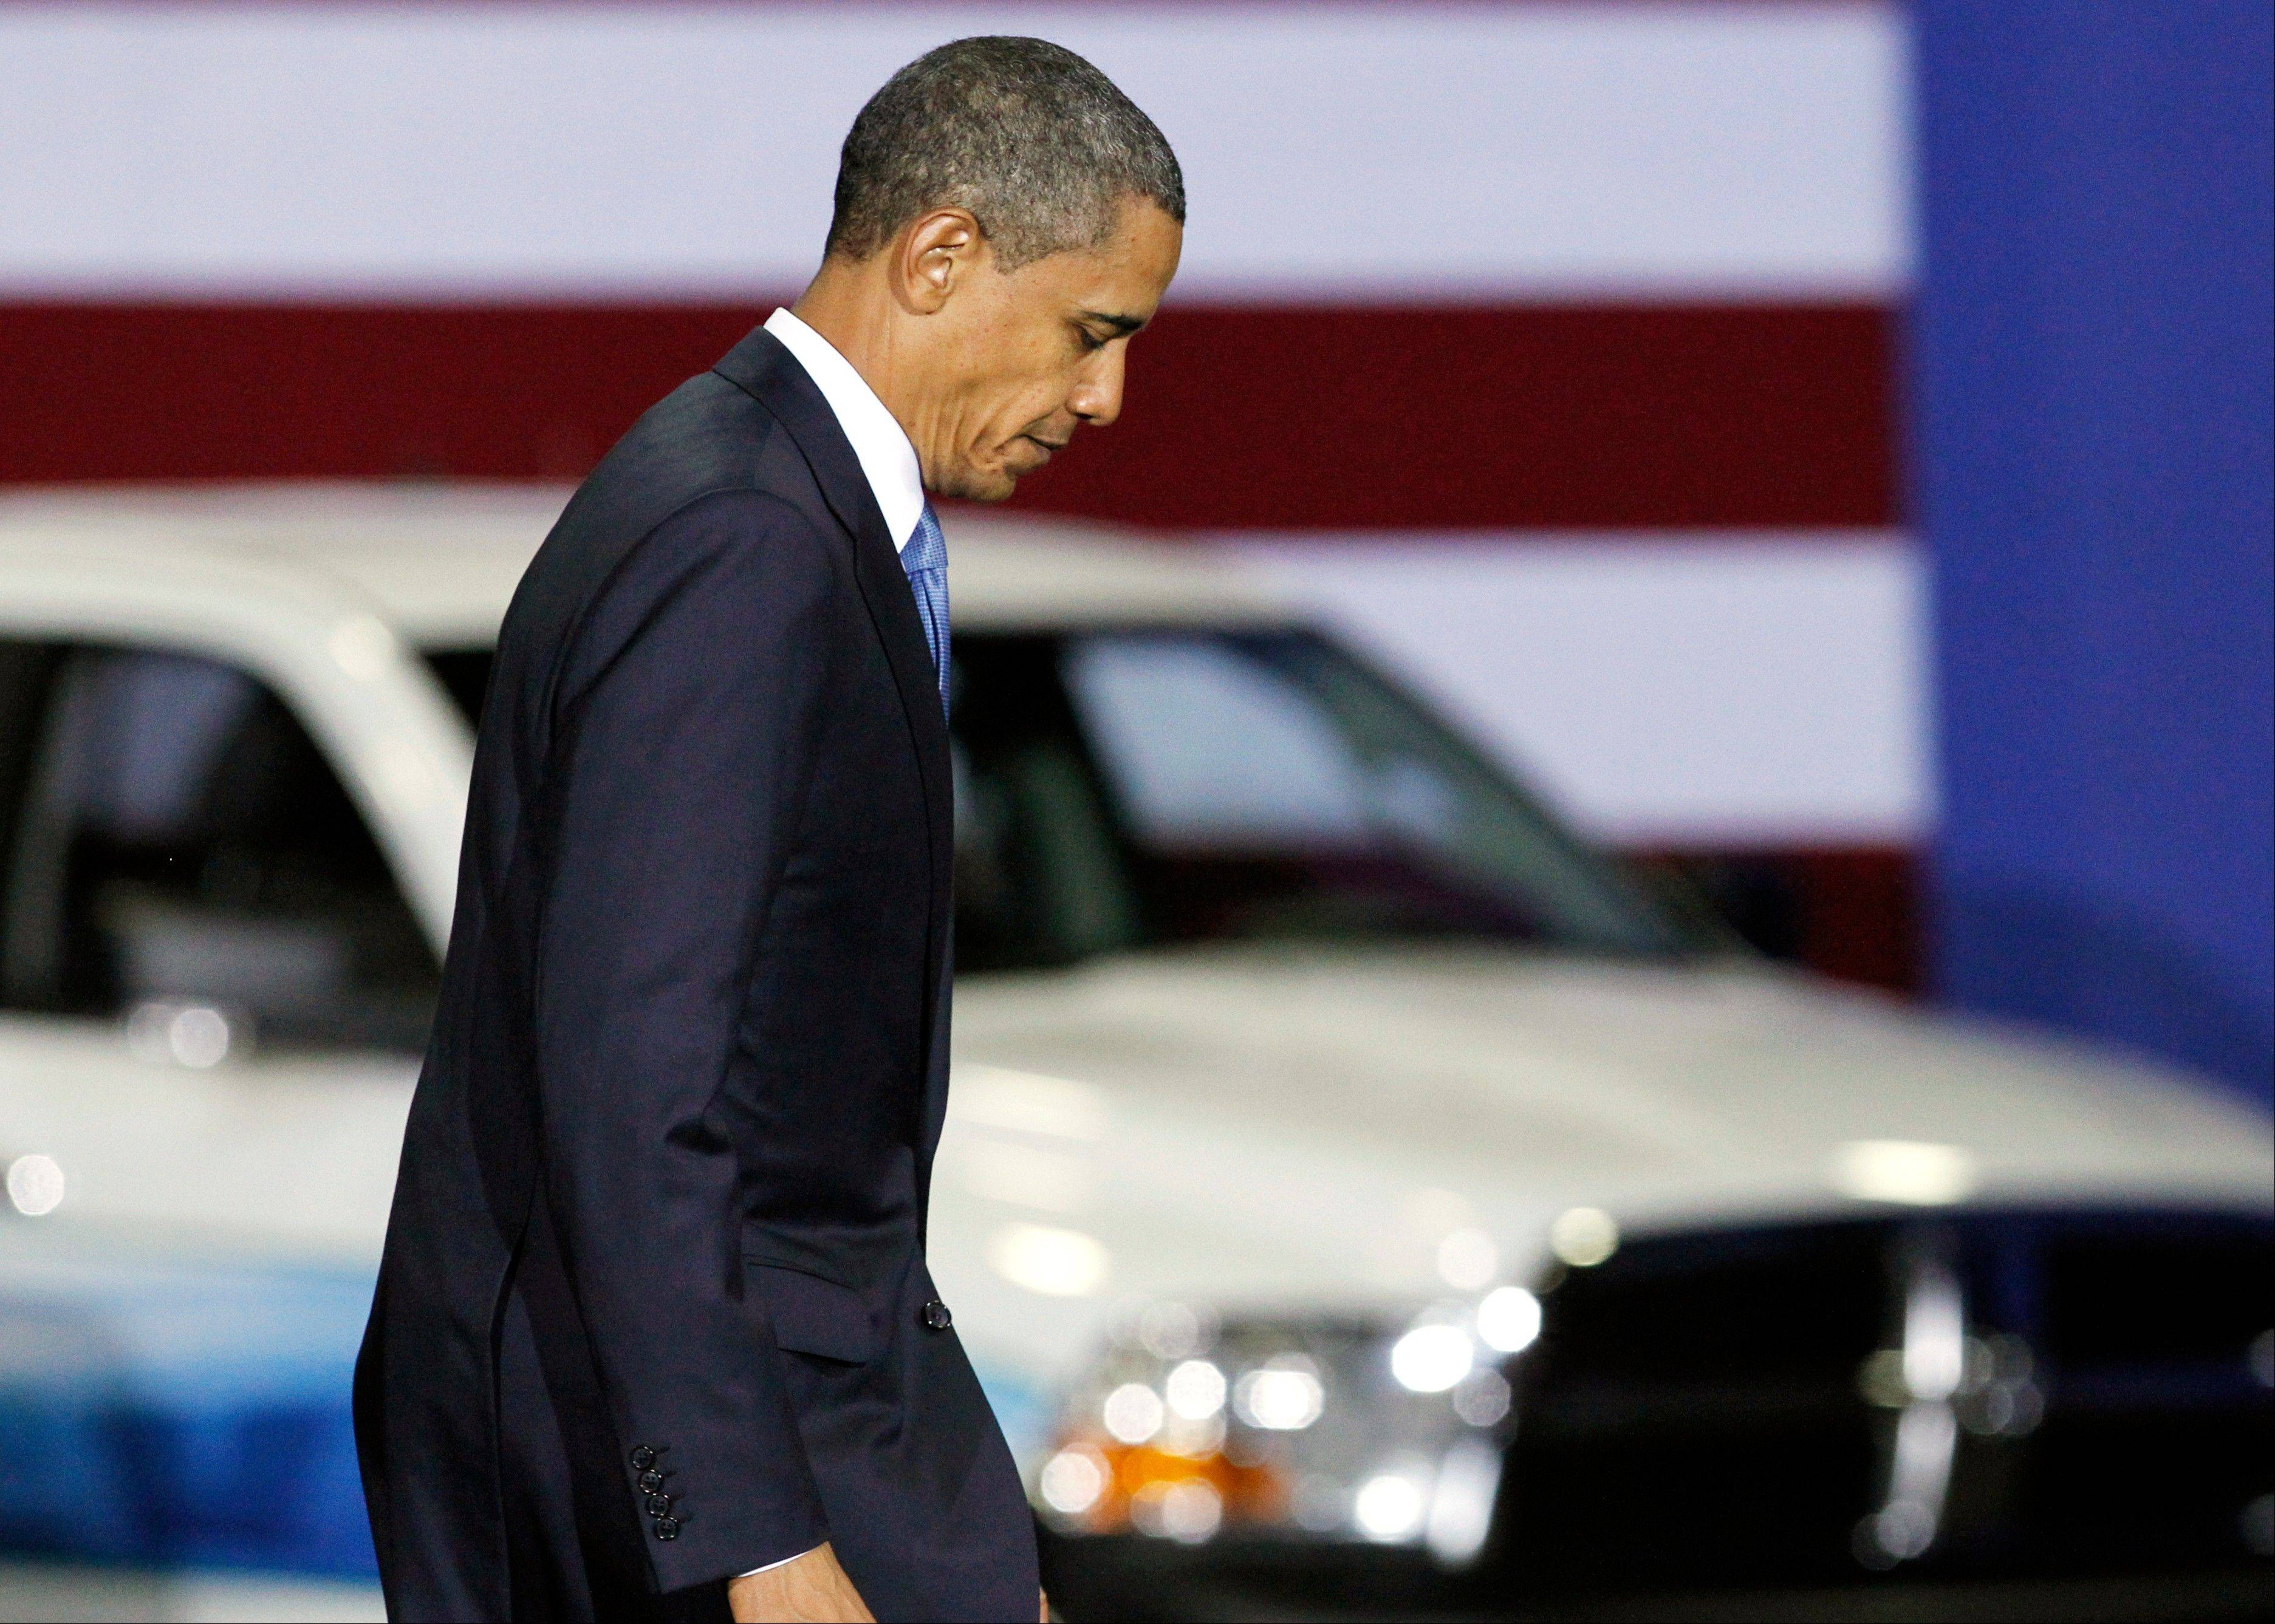 President Barack Obama announced new fuel efficency standards Tuesday that he says will save families more than $1.7 trillion in fuel costs and bring an average savings of $8,000 over the lifetime of a new vehicle sold in 2025.